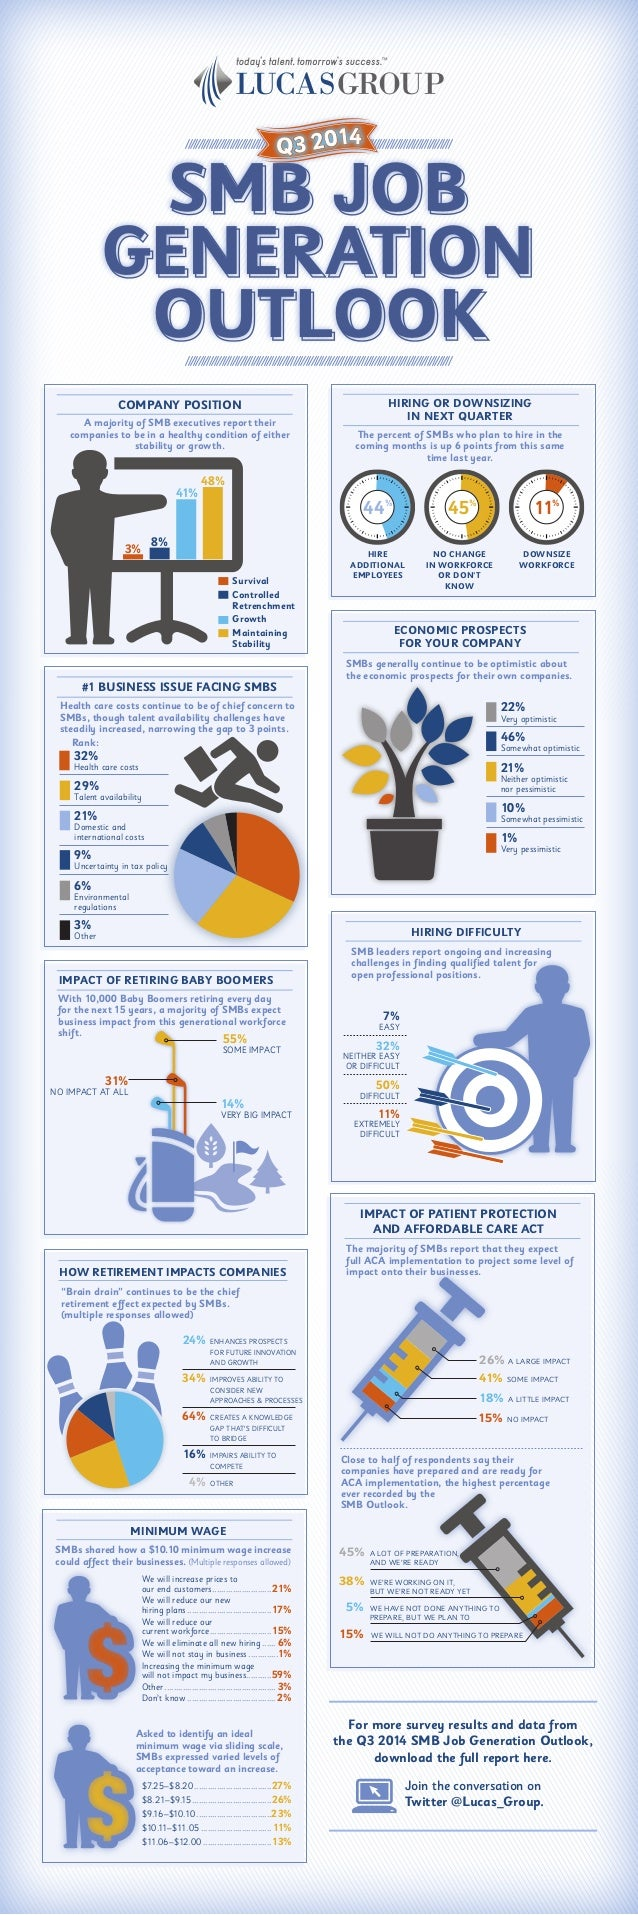 SMB JOB GENERATION OUTLOOK Q3 2014 HIRING OR DOWNSIZING IN NEXT QUARTER The percent of SMBs who plan to hire in the coming...